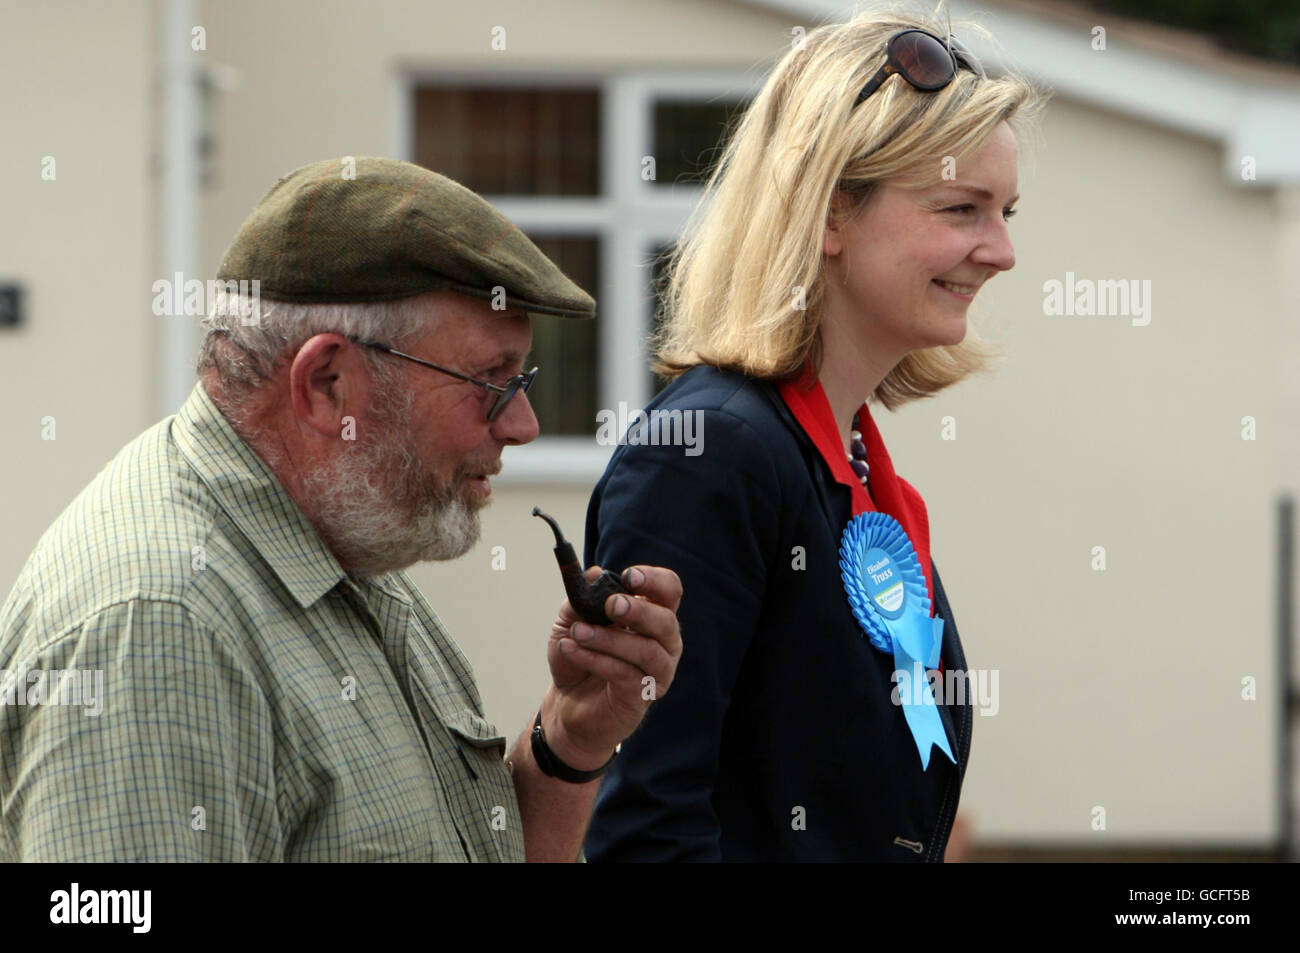 2010 General Election campaign Apr 29th - Stock Image